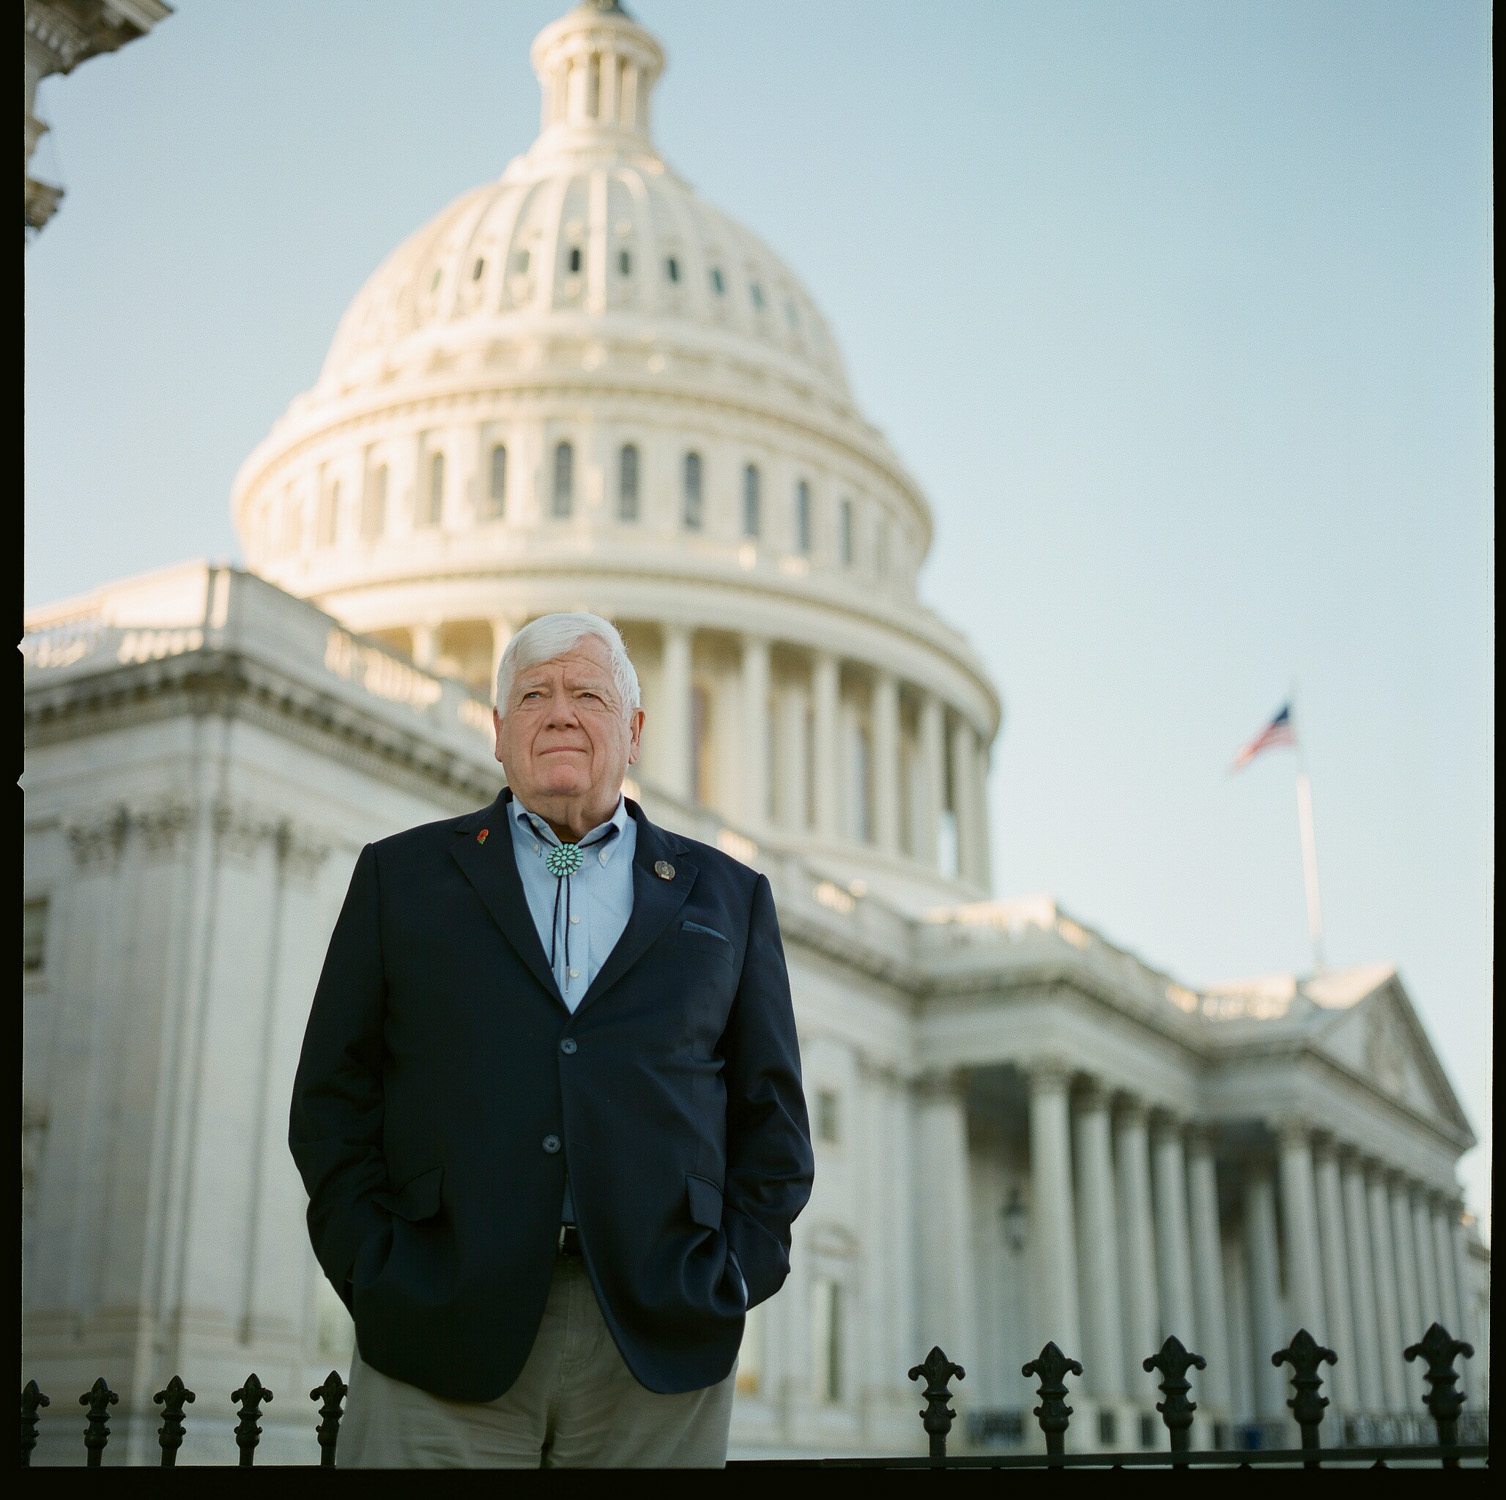 image of US Representative Jim McDermott in front of Congress Capitol building in Washington DC